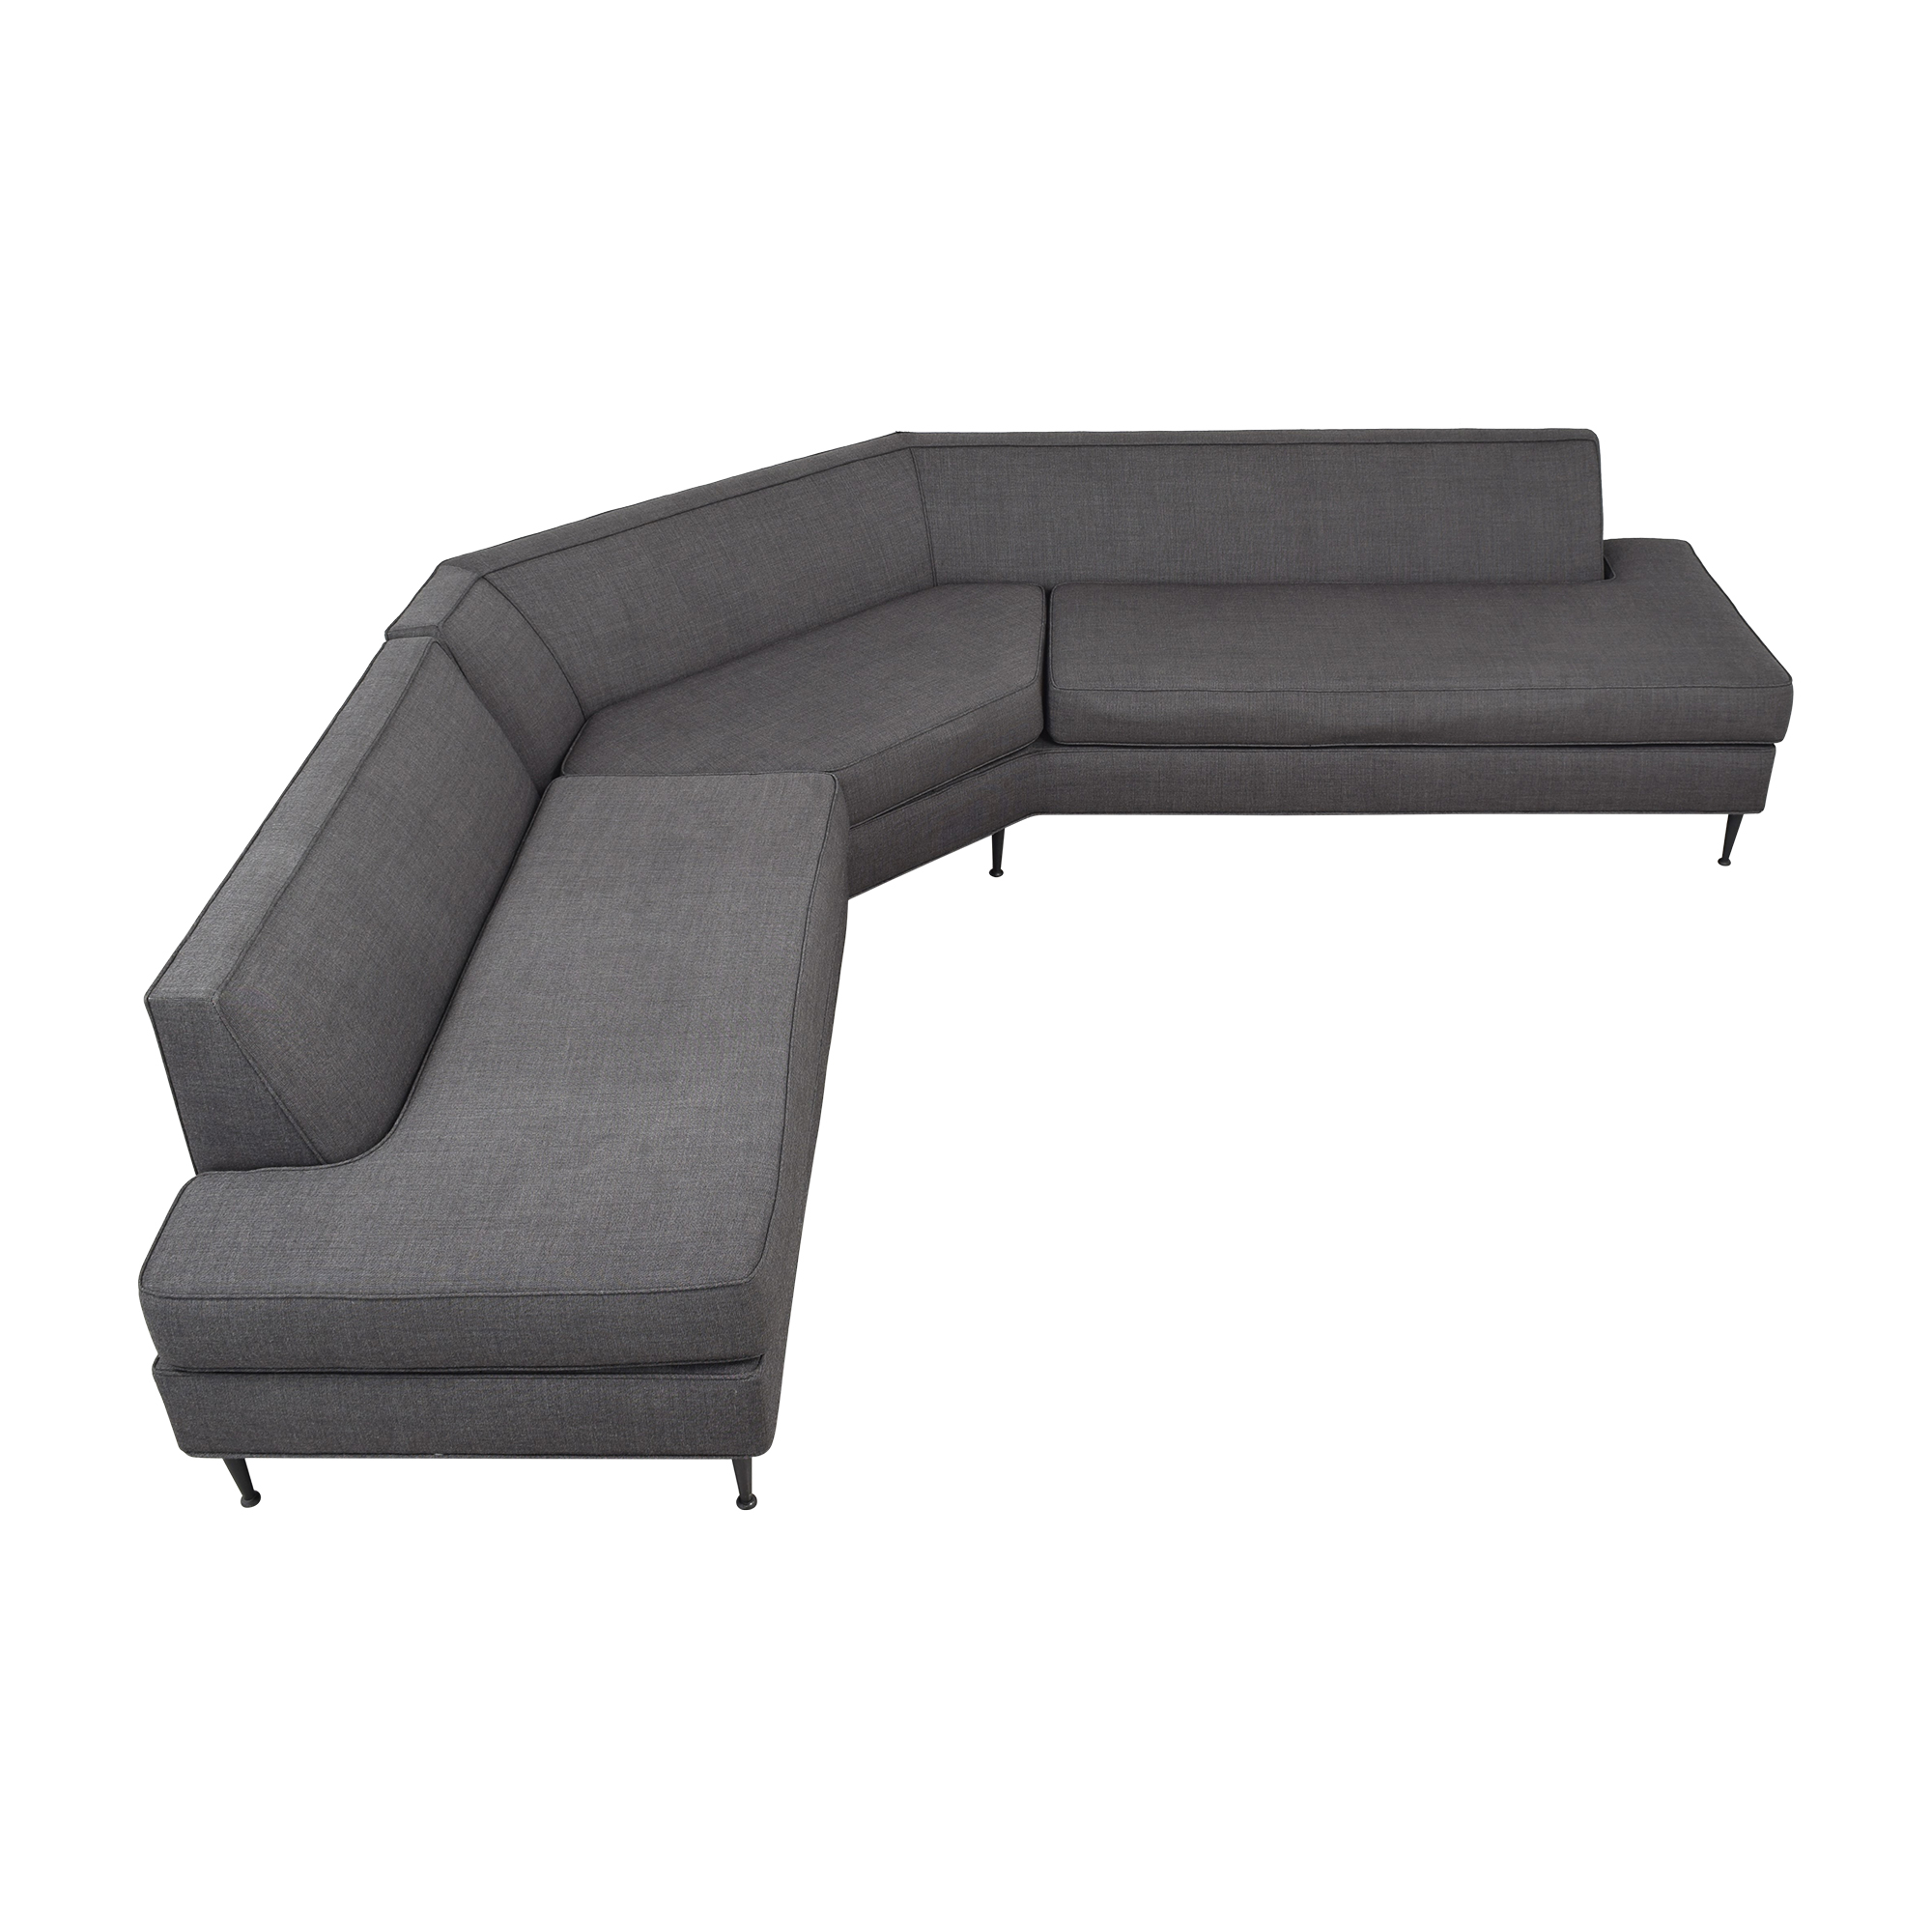 Custom Mid Century Wedge Sectional for sale